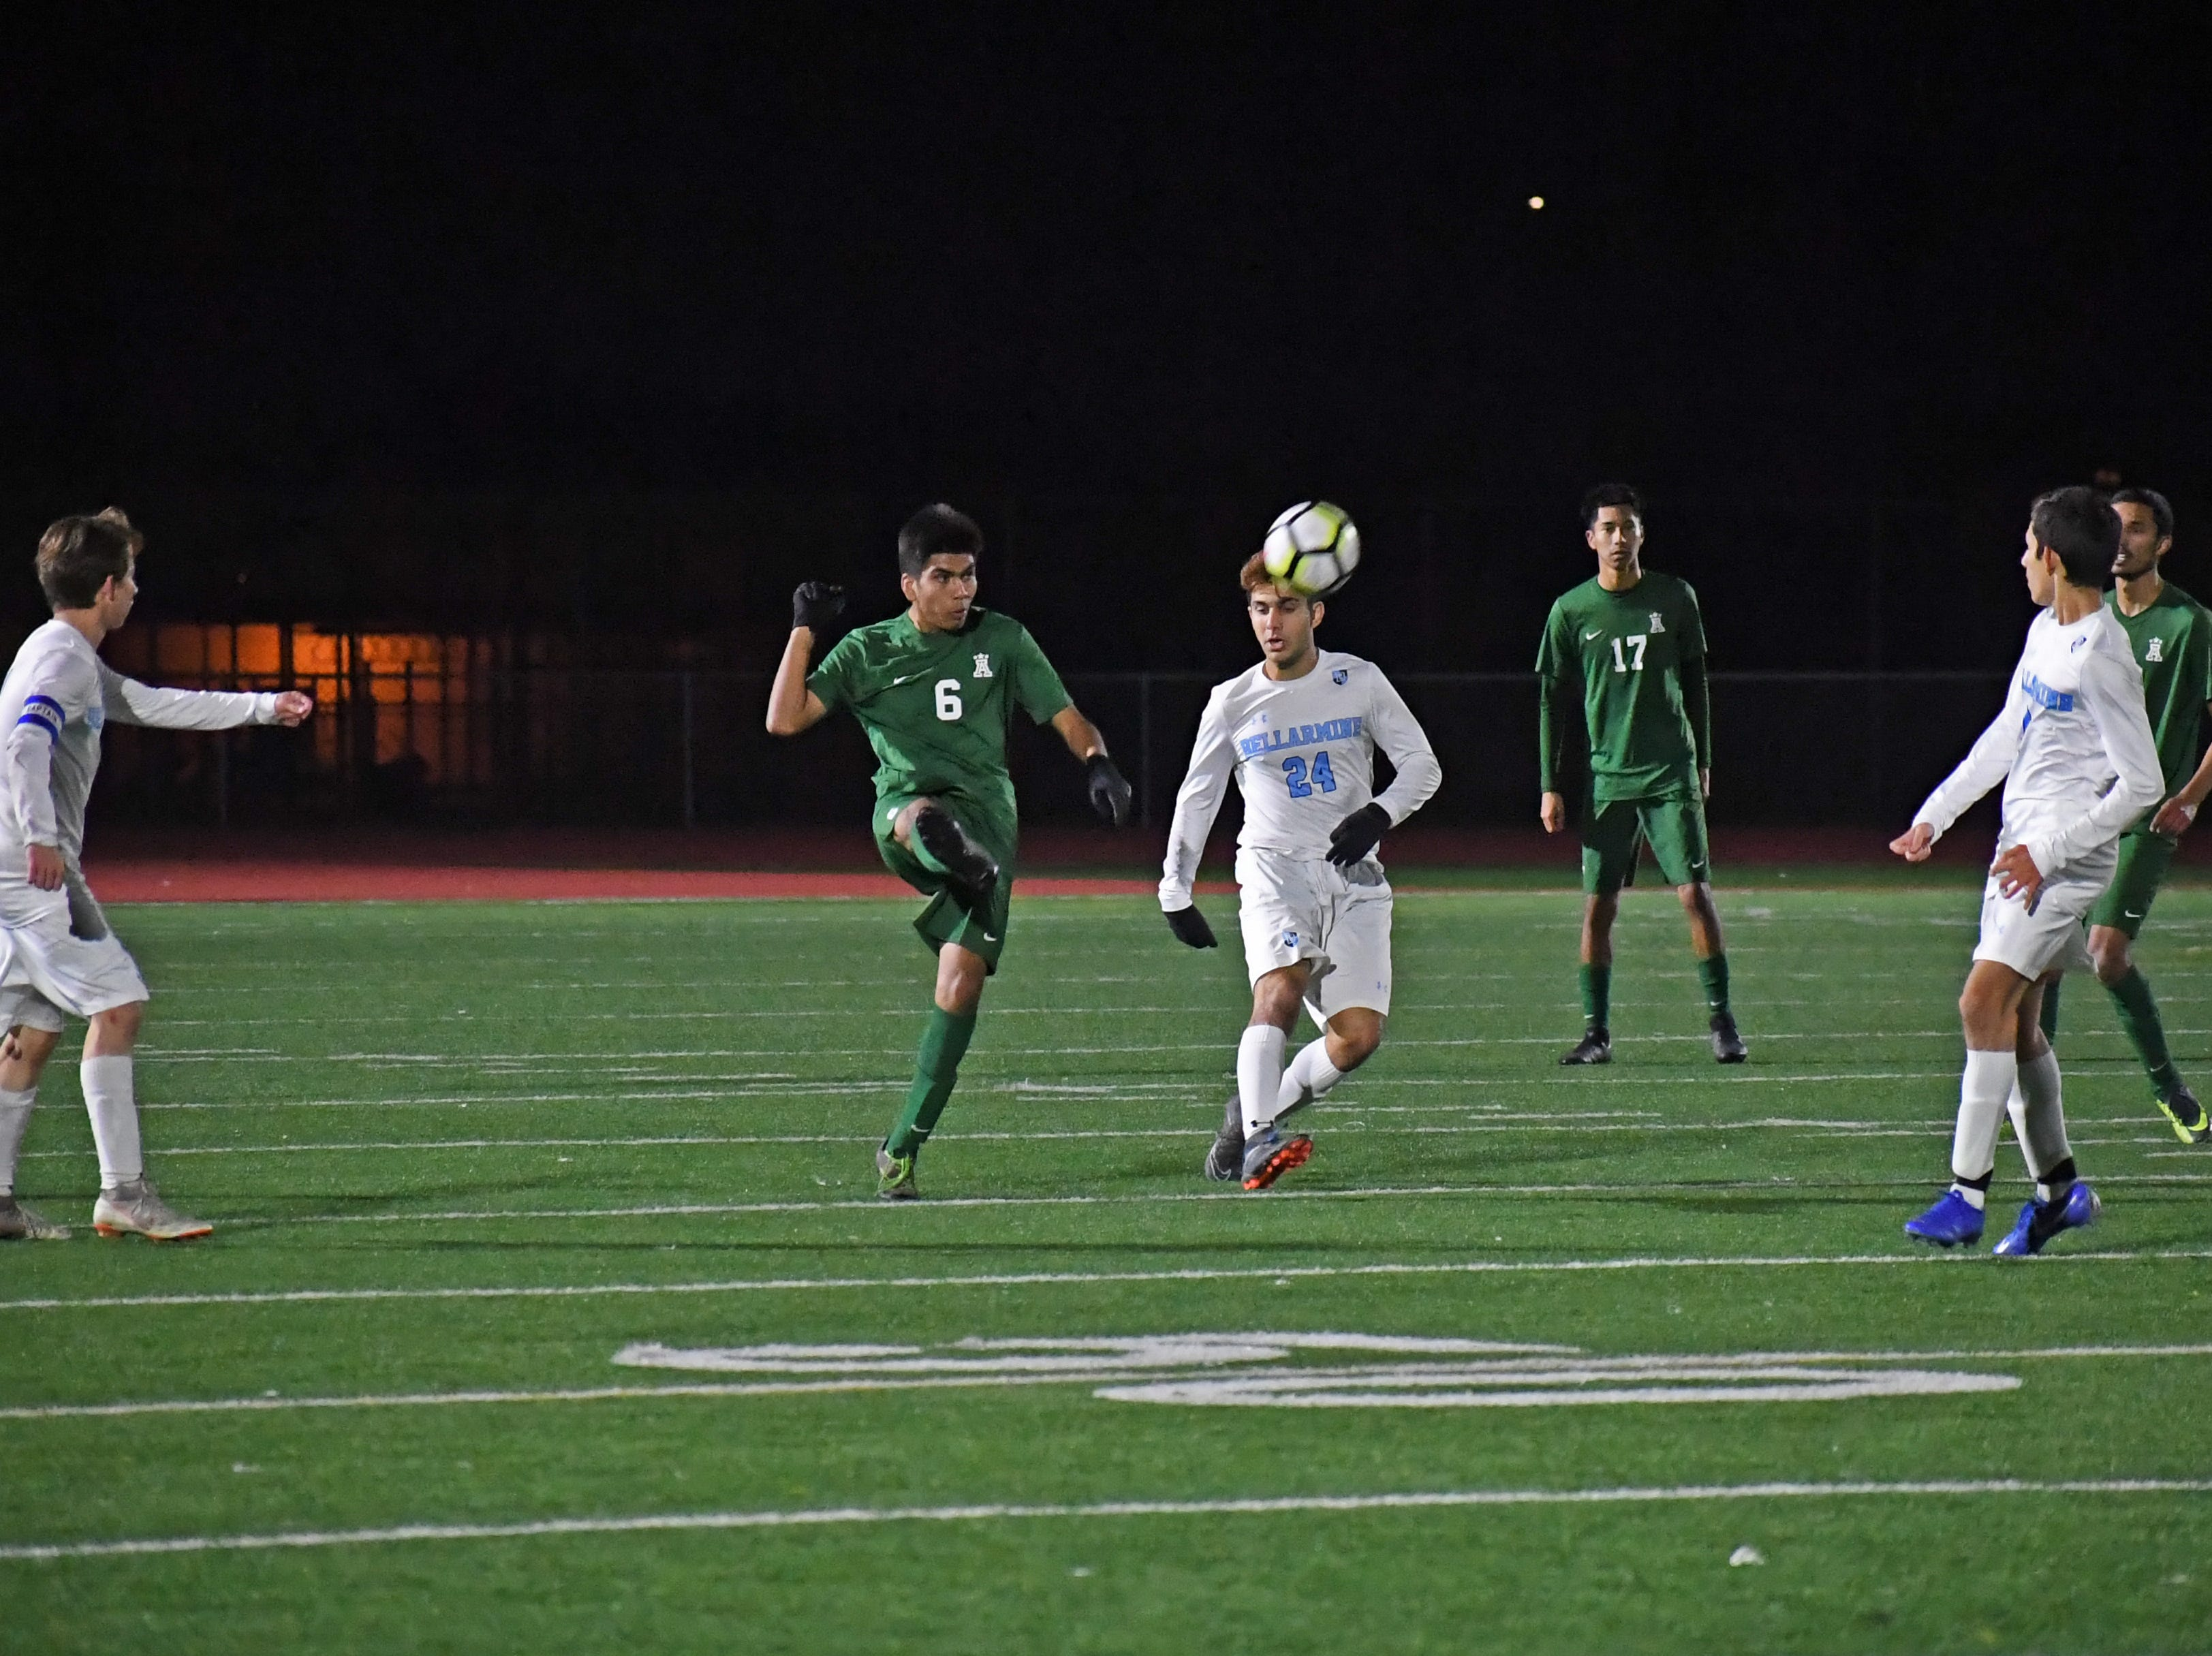 Defender Gabriel San Pablo (6) knocks a ball toward the Bellarmine side of the field after a goalie kick.